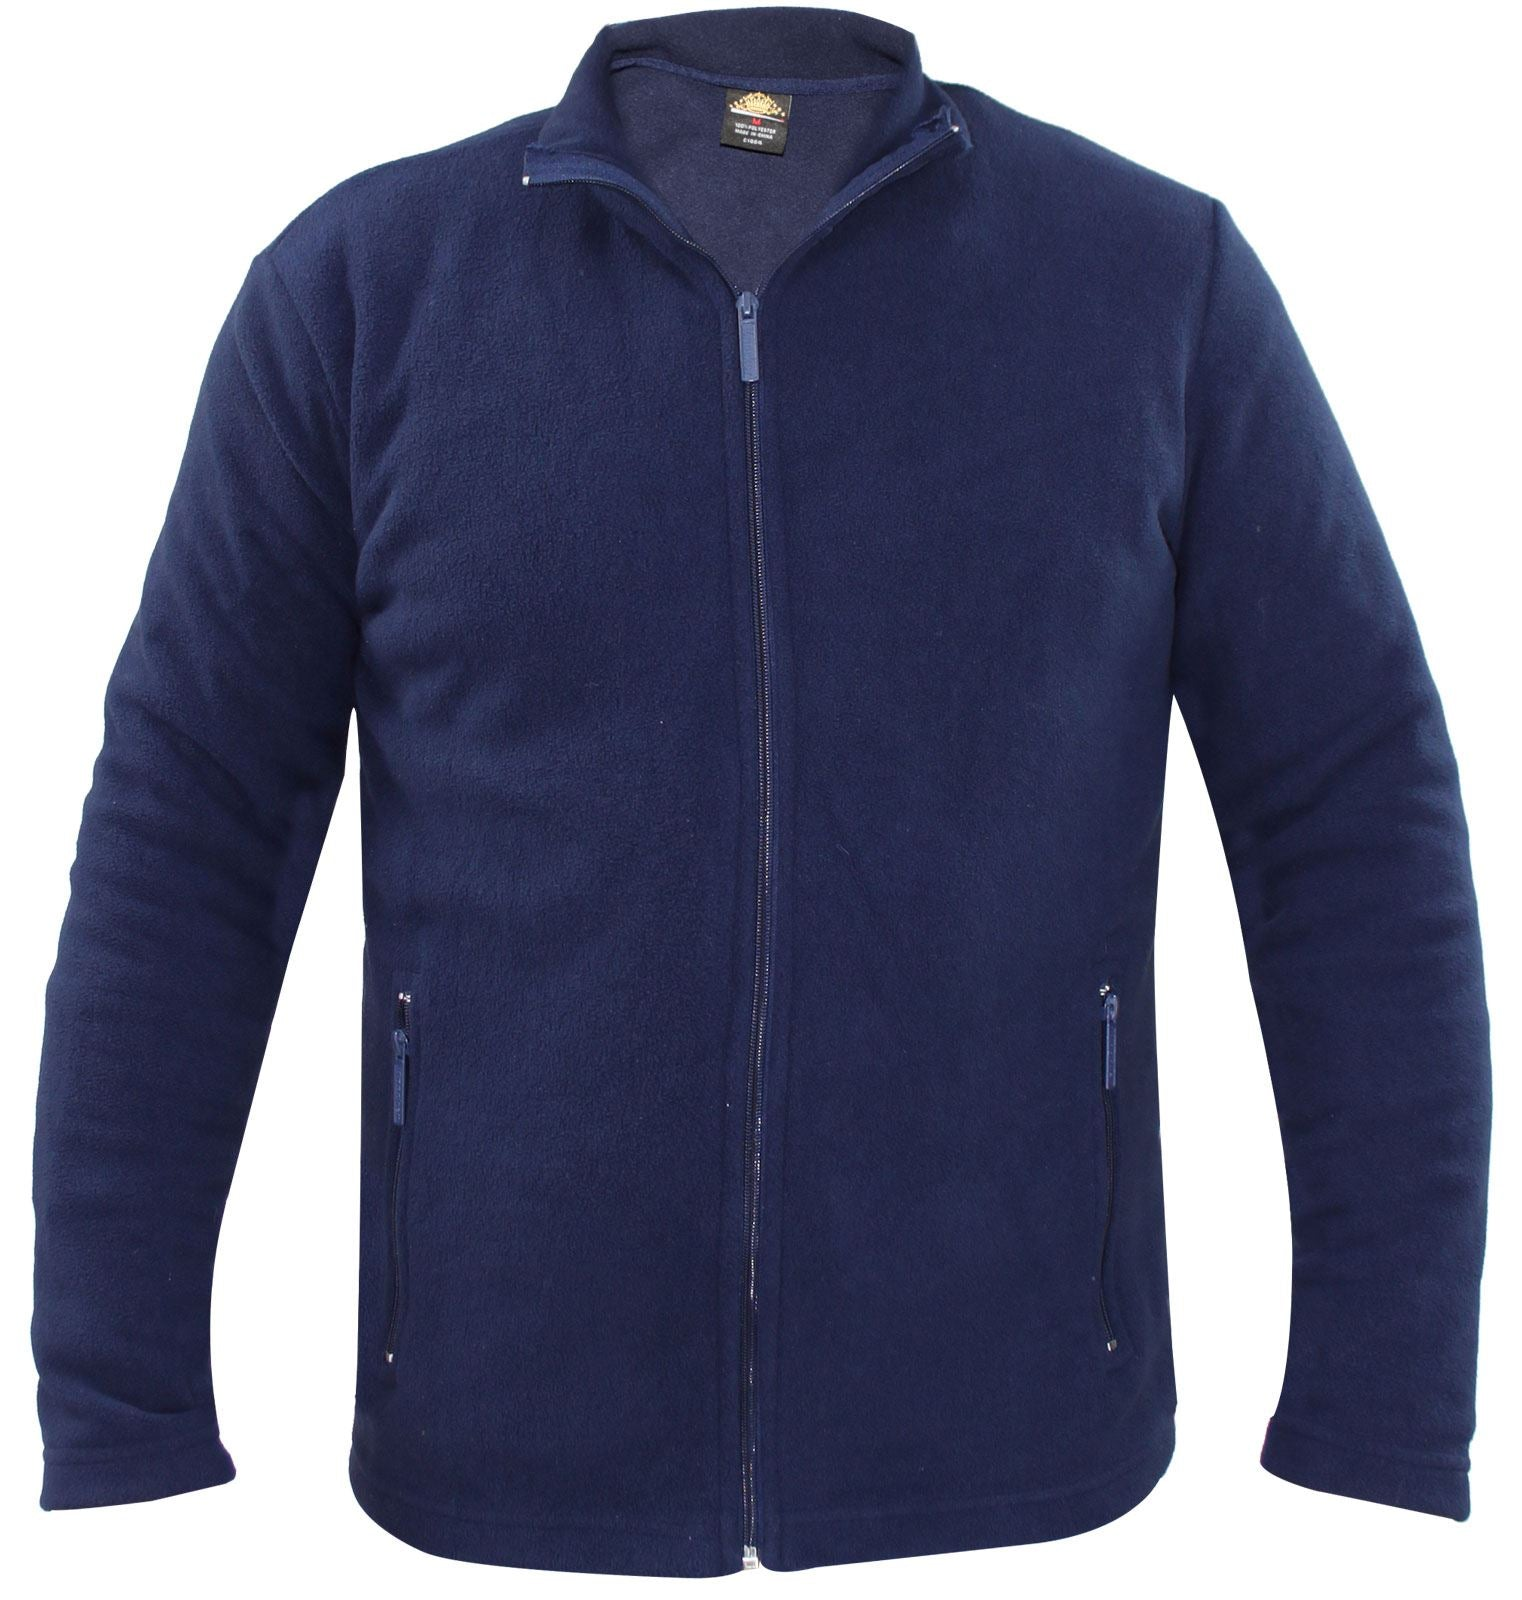 Mens Jacket RK37 Navy 5X-Large